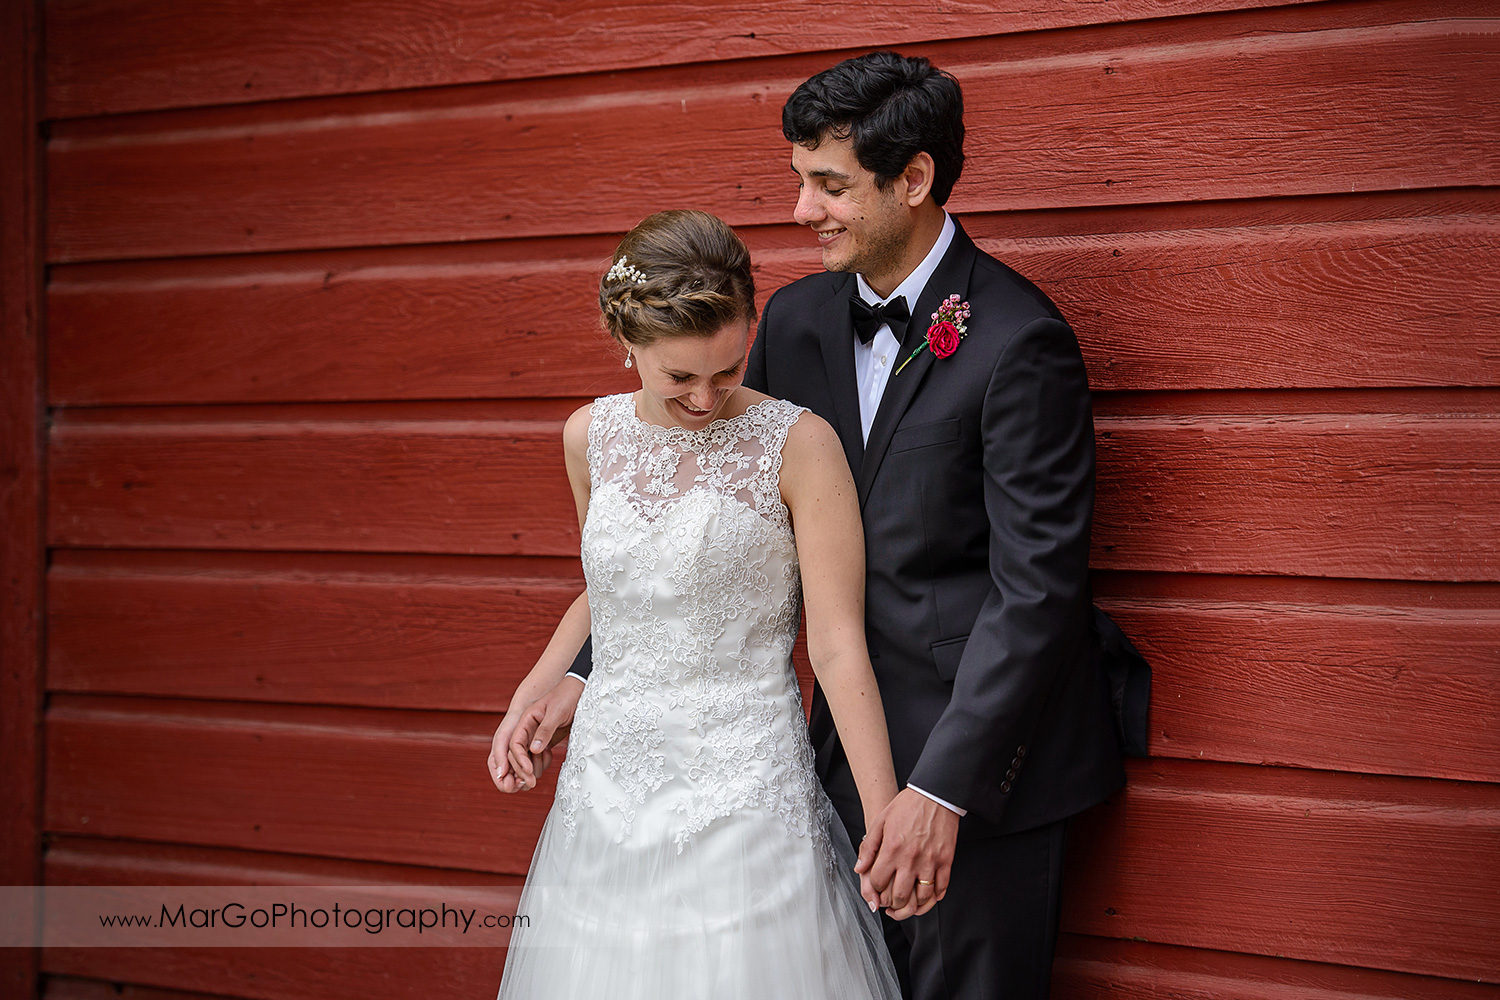 bride and groom laughing at red barn wall during bridal session at Shinn Historical Park and Arboretum in Fremont